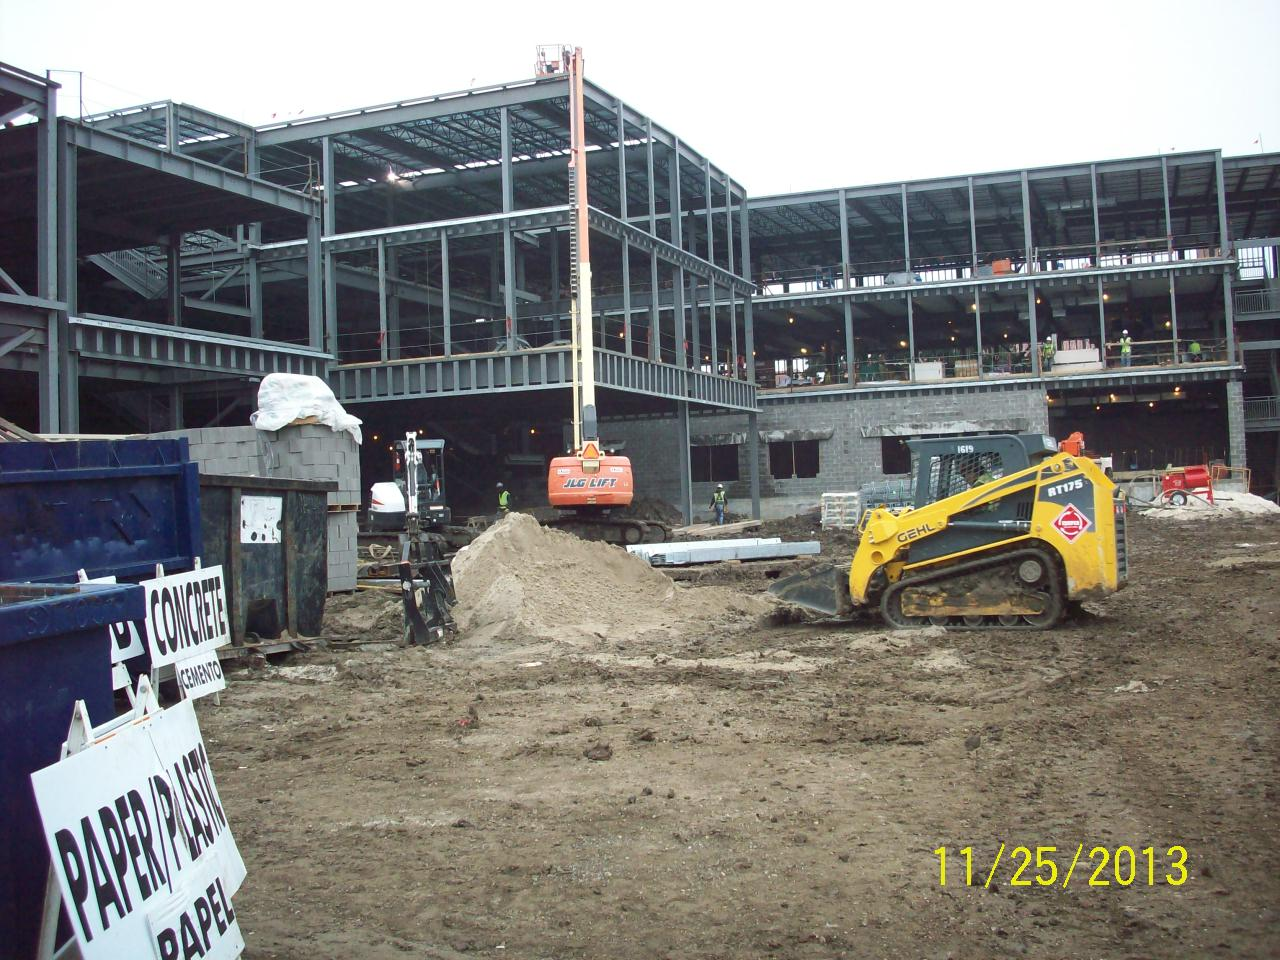 Fisk-Howard-Elementary-School-General-site-construction